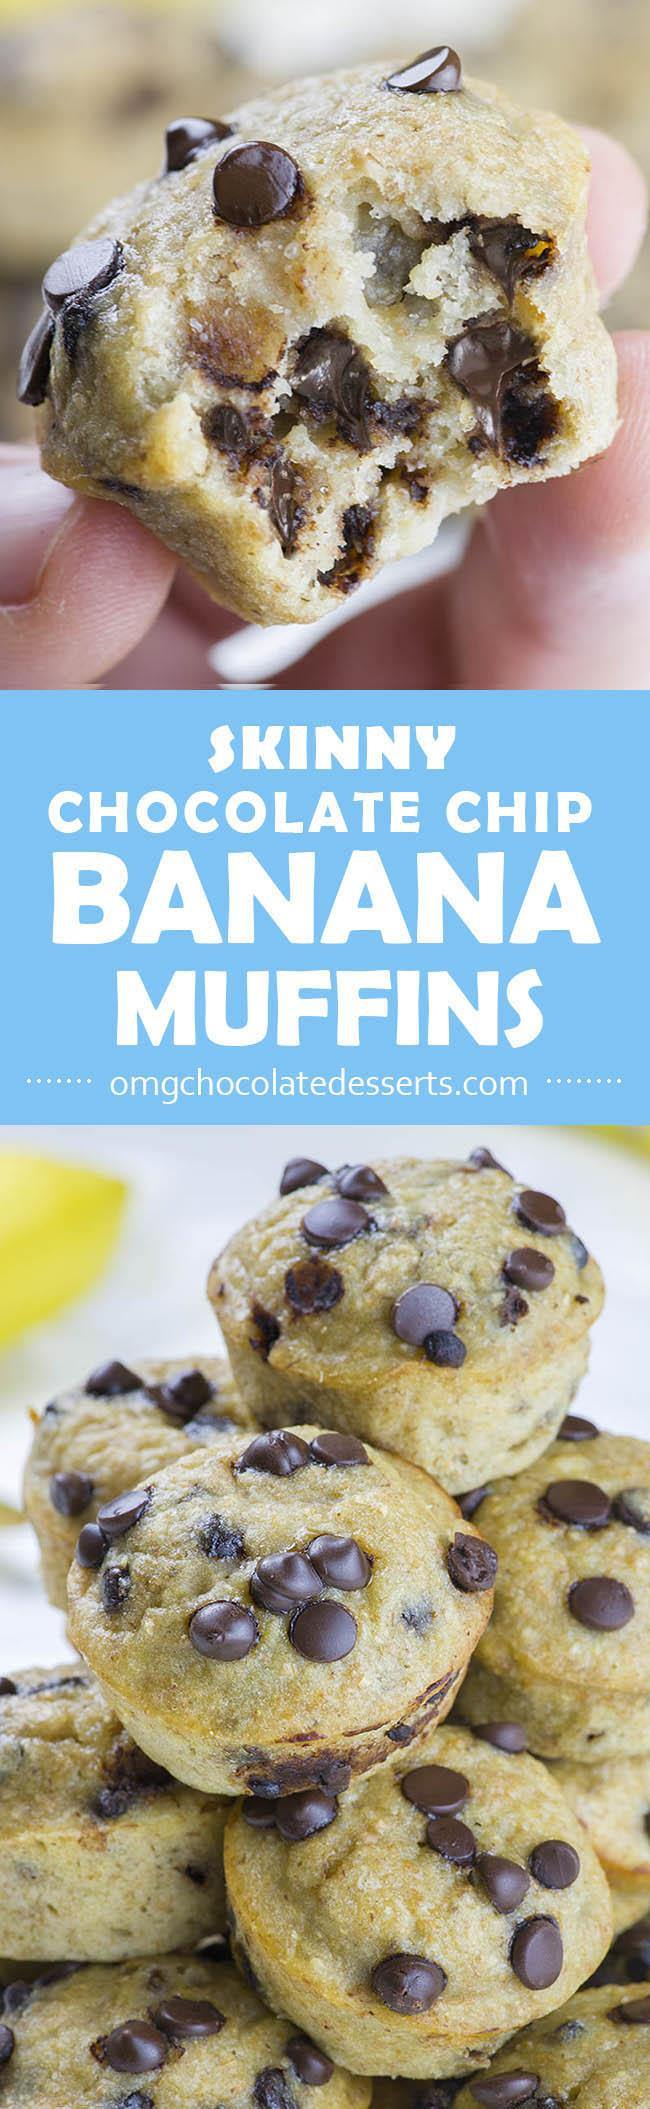 Skinny Chocolate Chip Banana Muffins Omg Desserts Choco Chips Pin This Muffin Recipe For Later